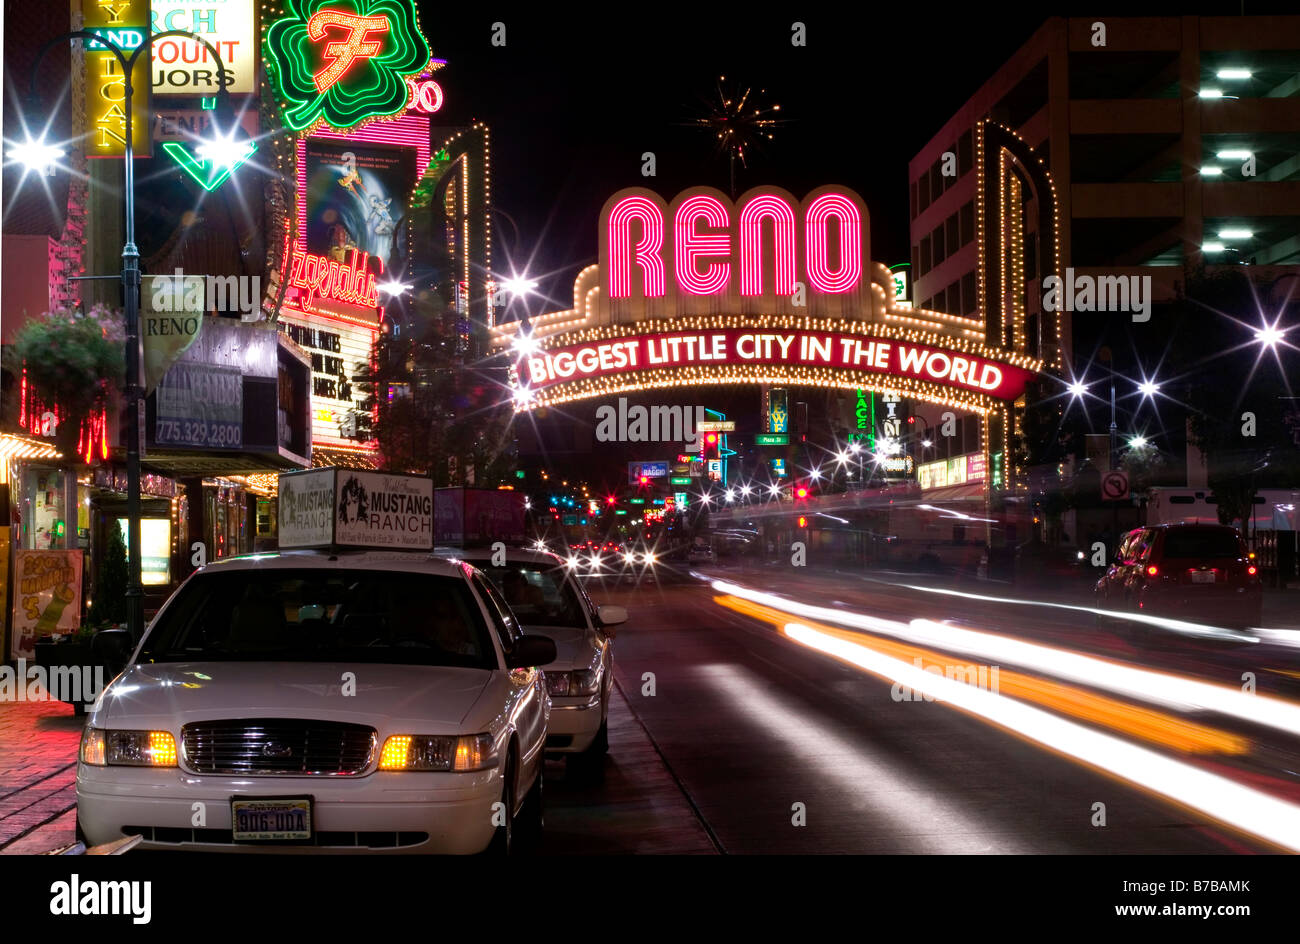 Virginia St Reno Nevada at night Biggest little city in the World - Stock Image